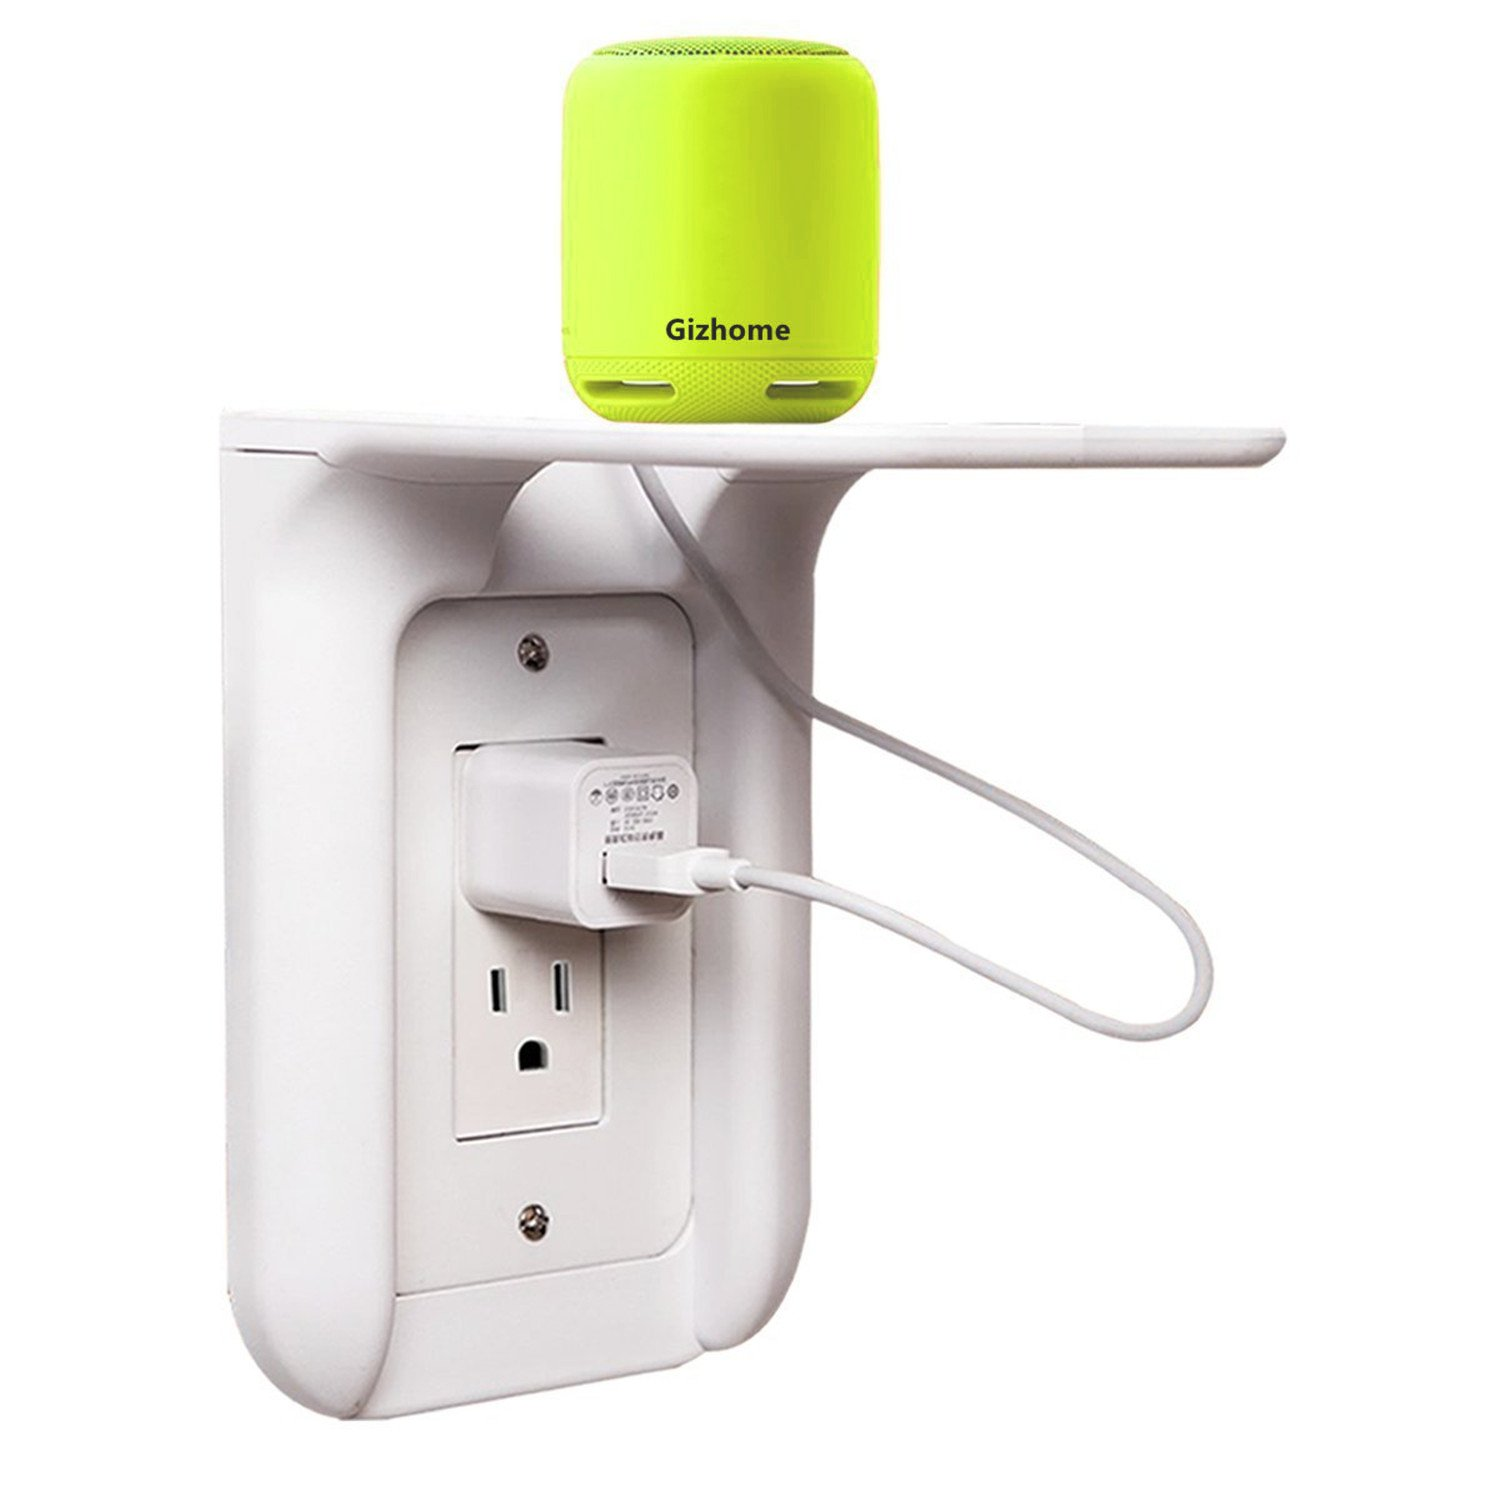 Gizhome Wall Outlet Shelf Power Perch, Works with Standard Vertical Duplex/Decor Outlets, Charging Shelf for Devices up to 7lbs, Easy Installation, White - 1 Pack